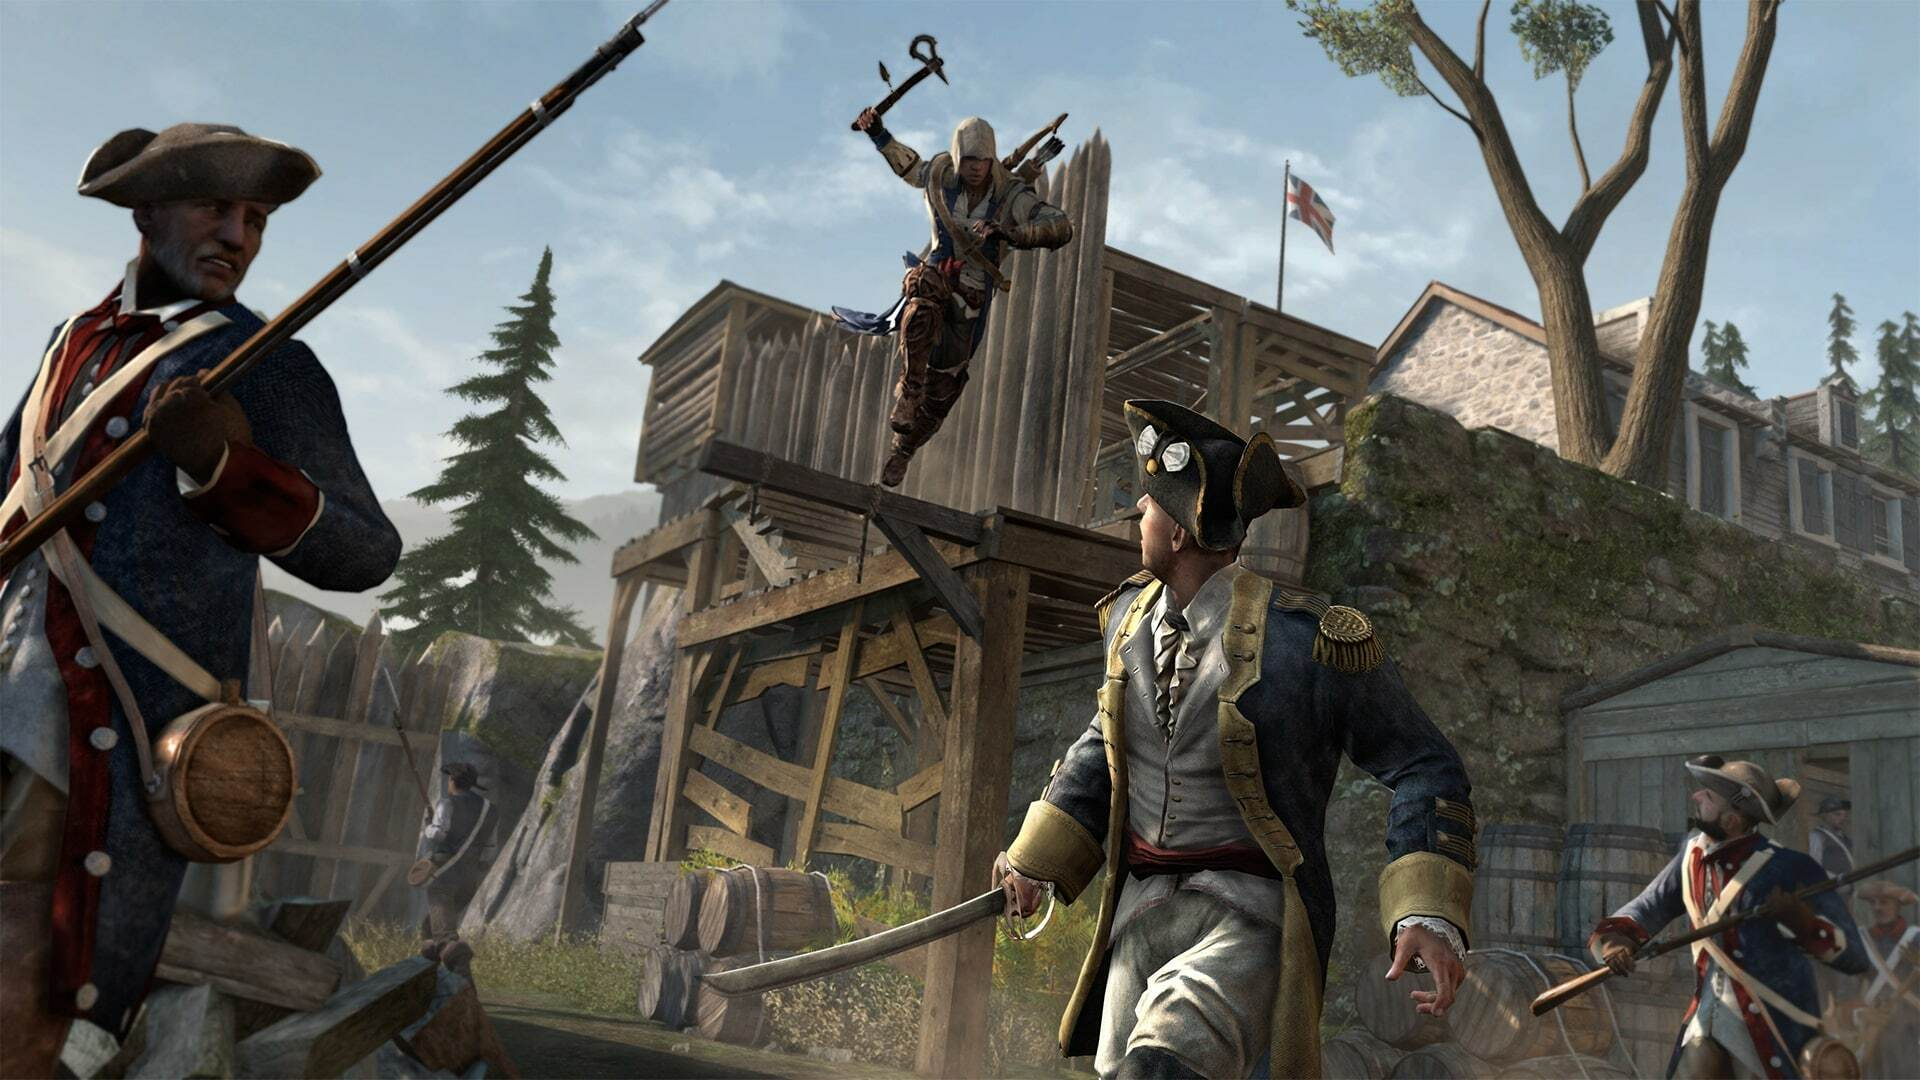 Assassin S Creed 3 Remastered Gets The History Channel Treatment In Latest Trailer Usgamer